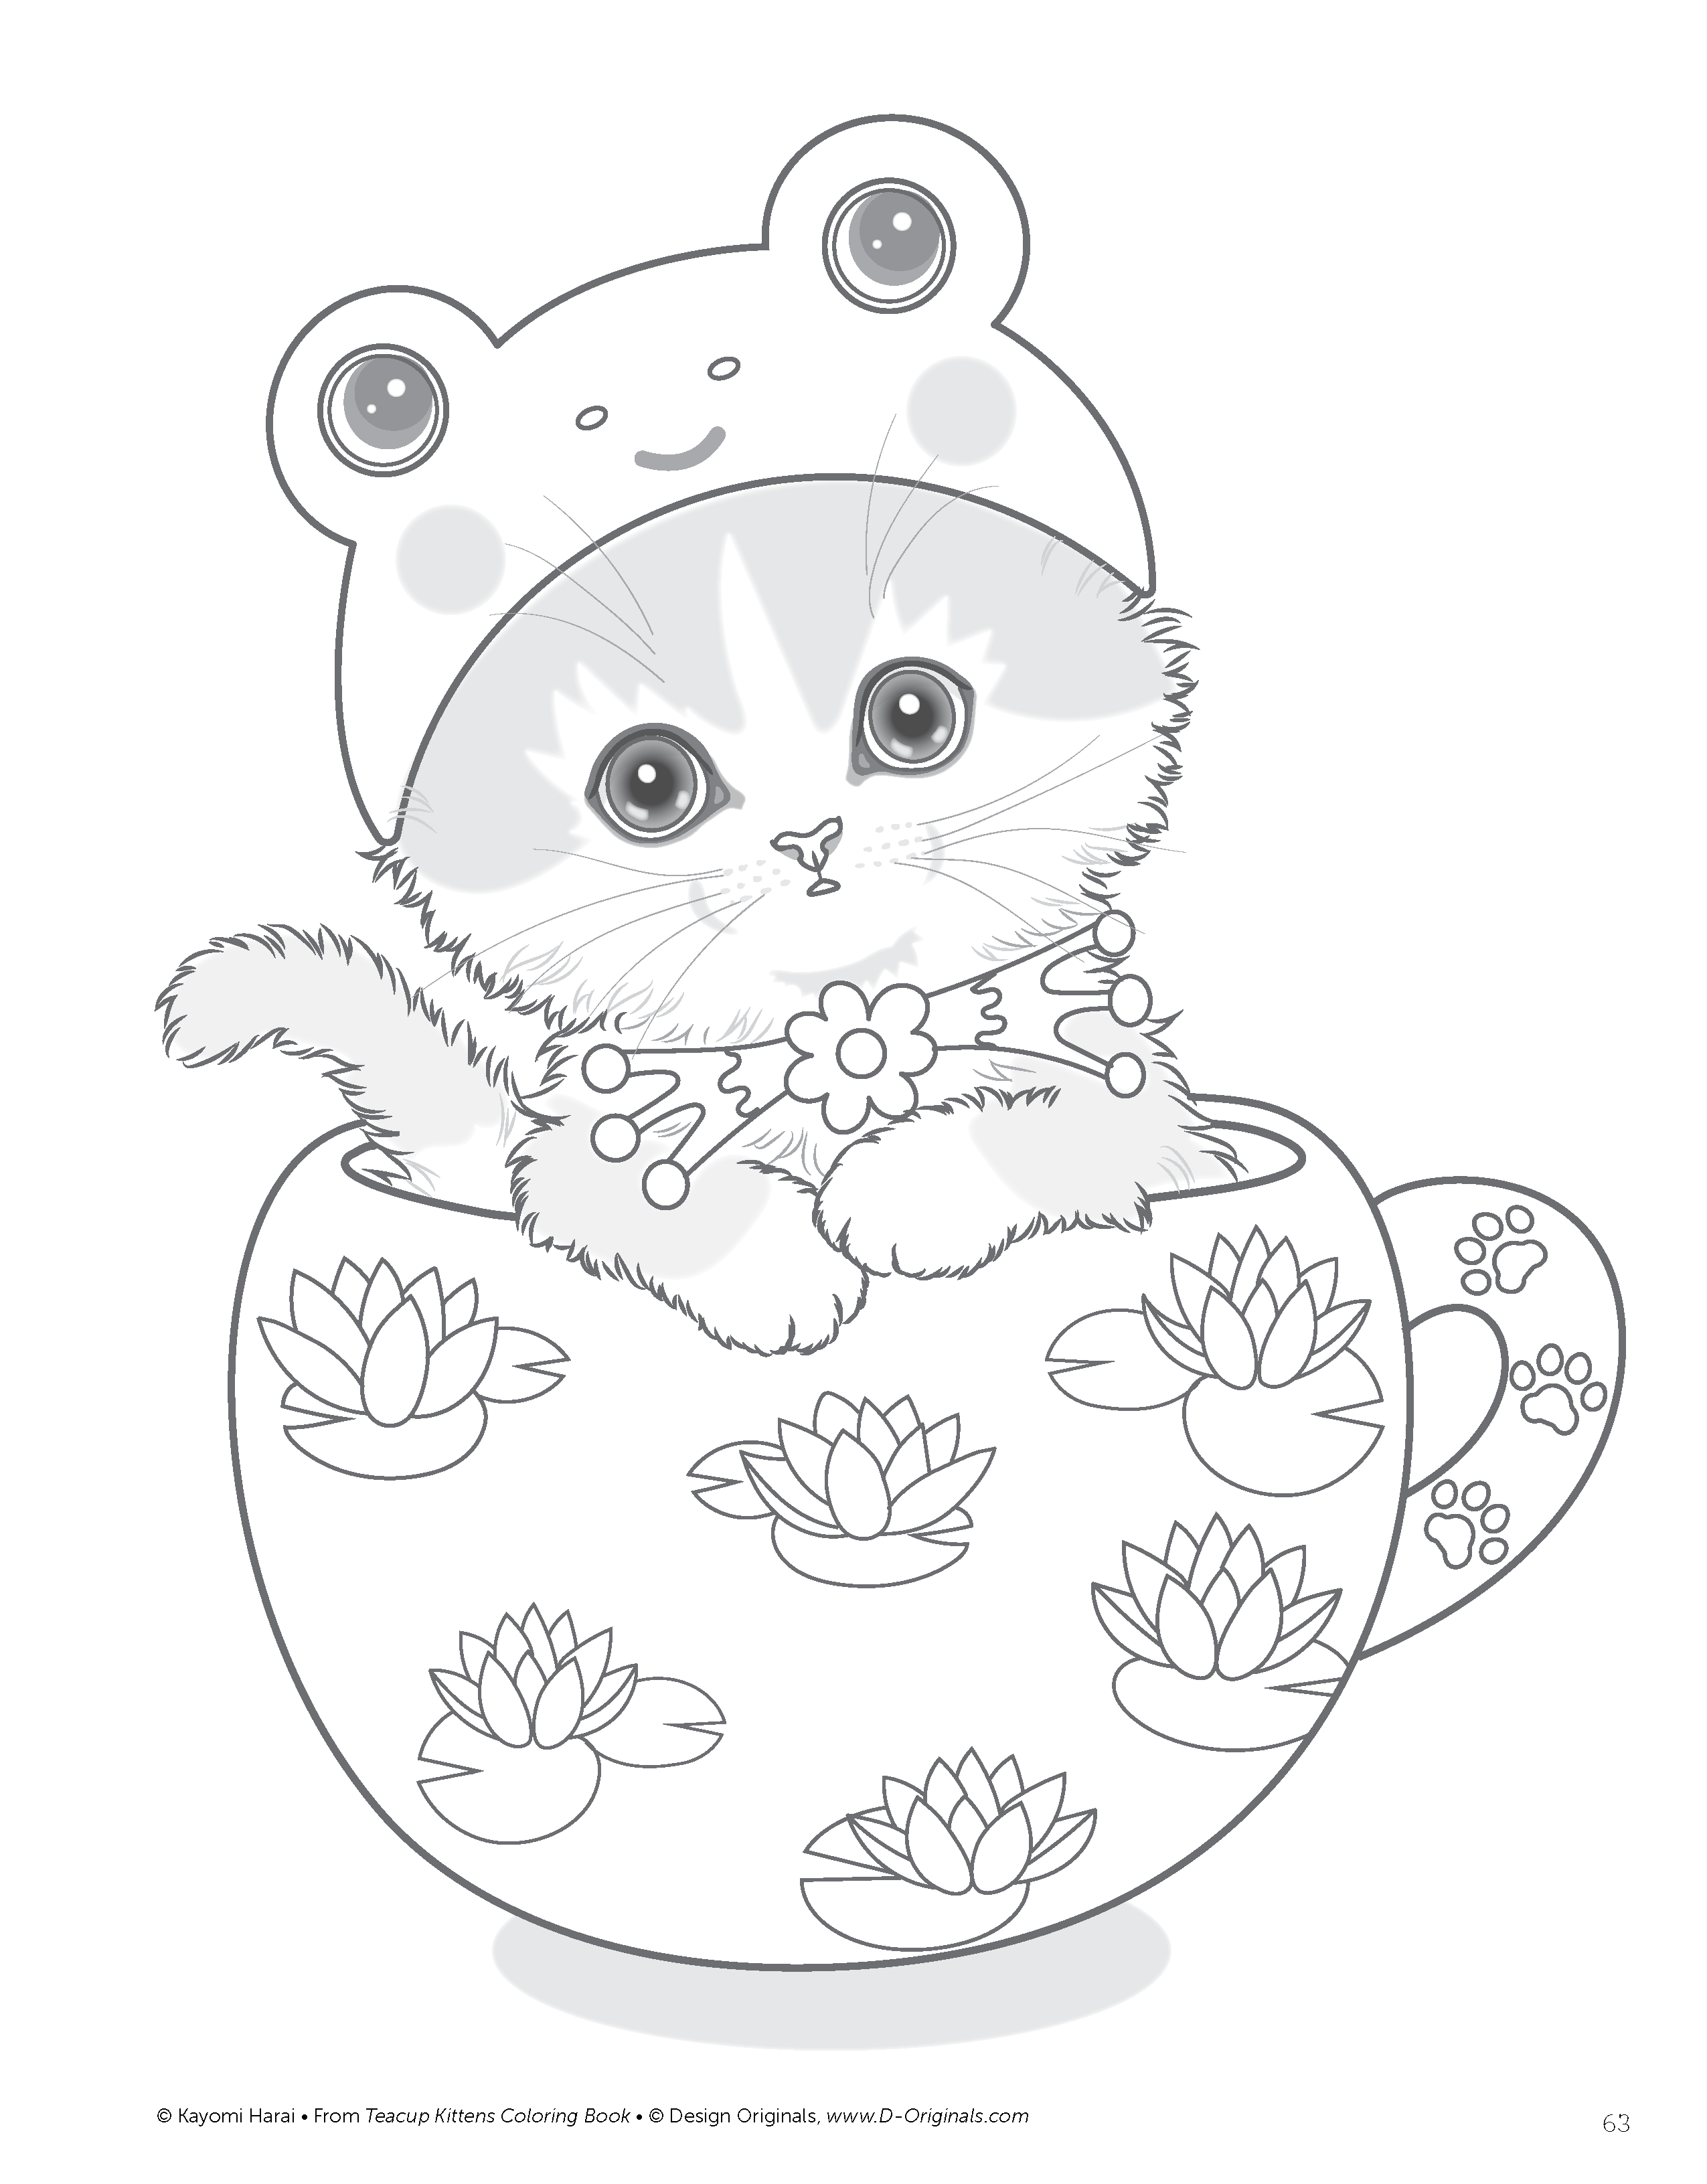 cute cat colouring pages cute baby cats coloring pages animal pictures cute cat colouring pages